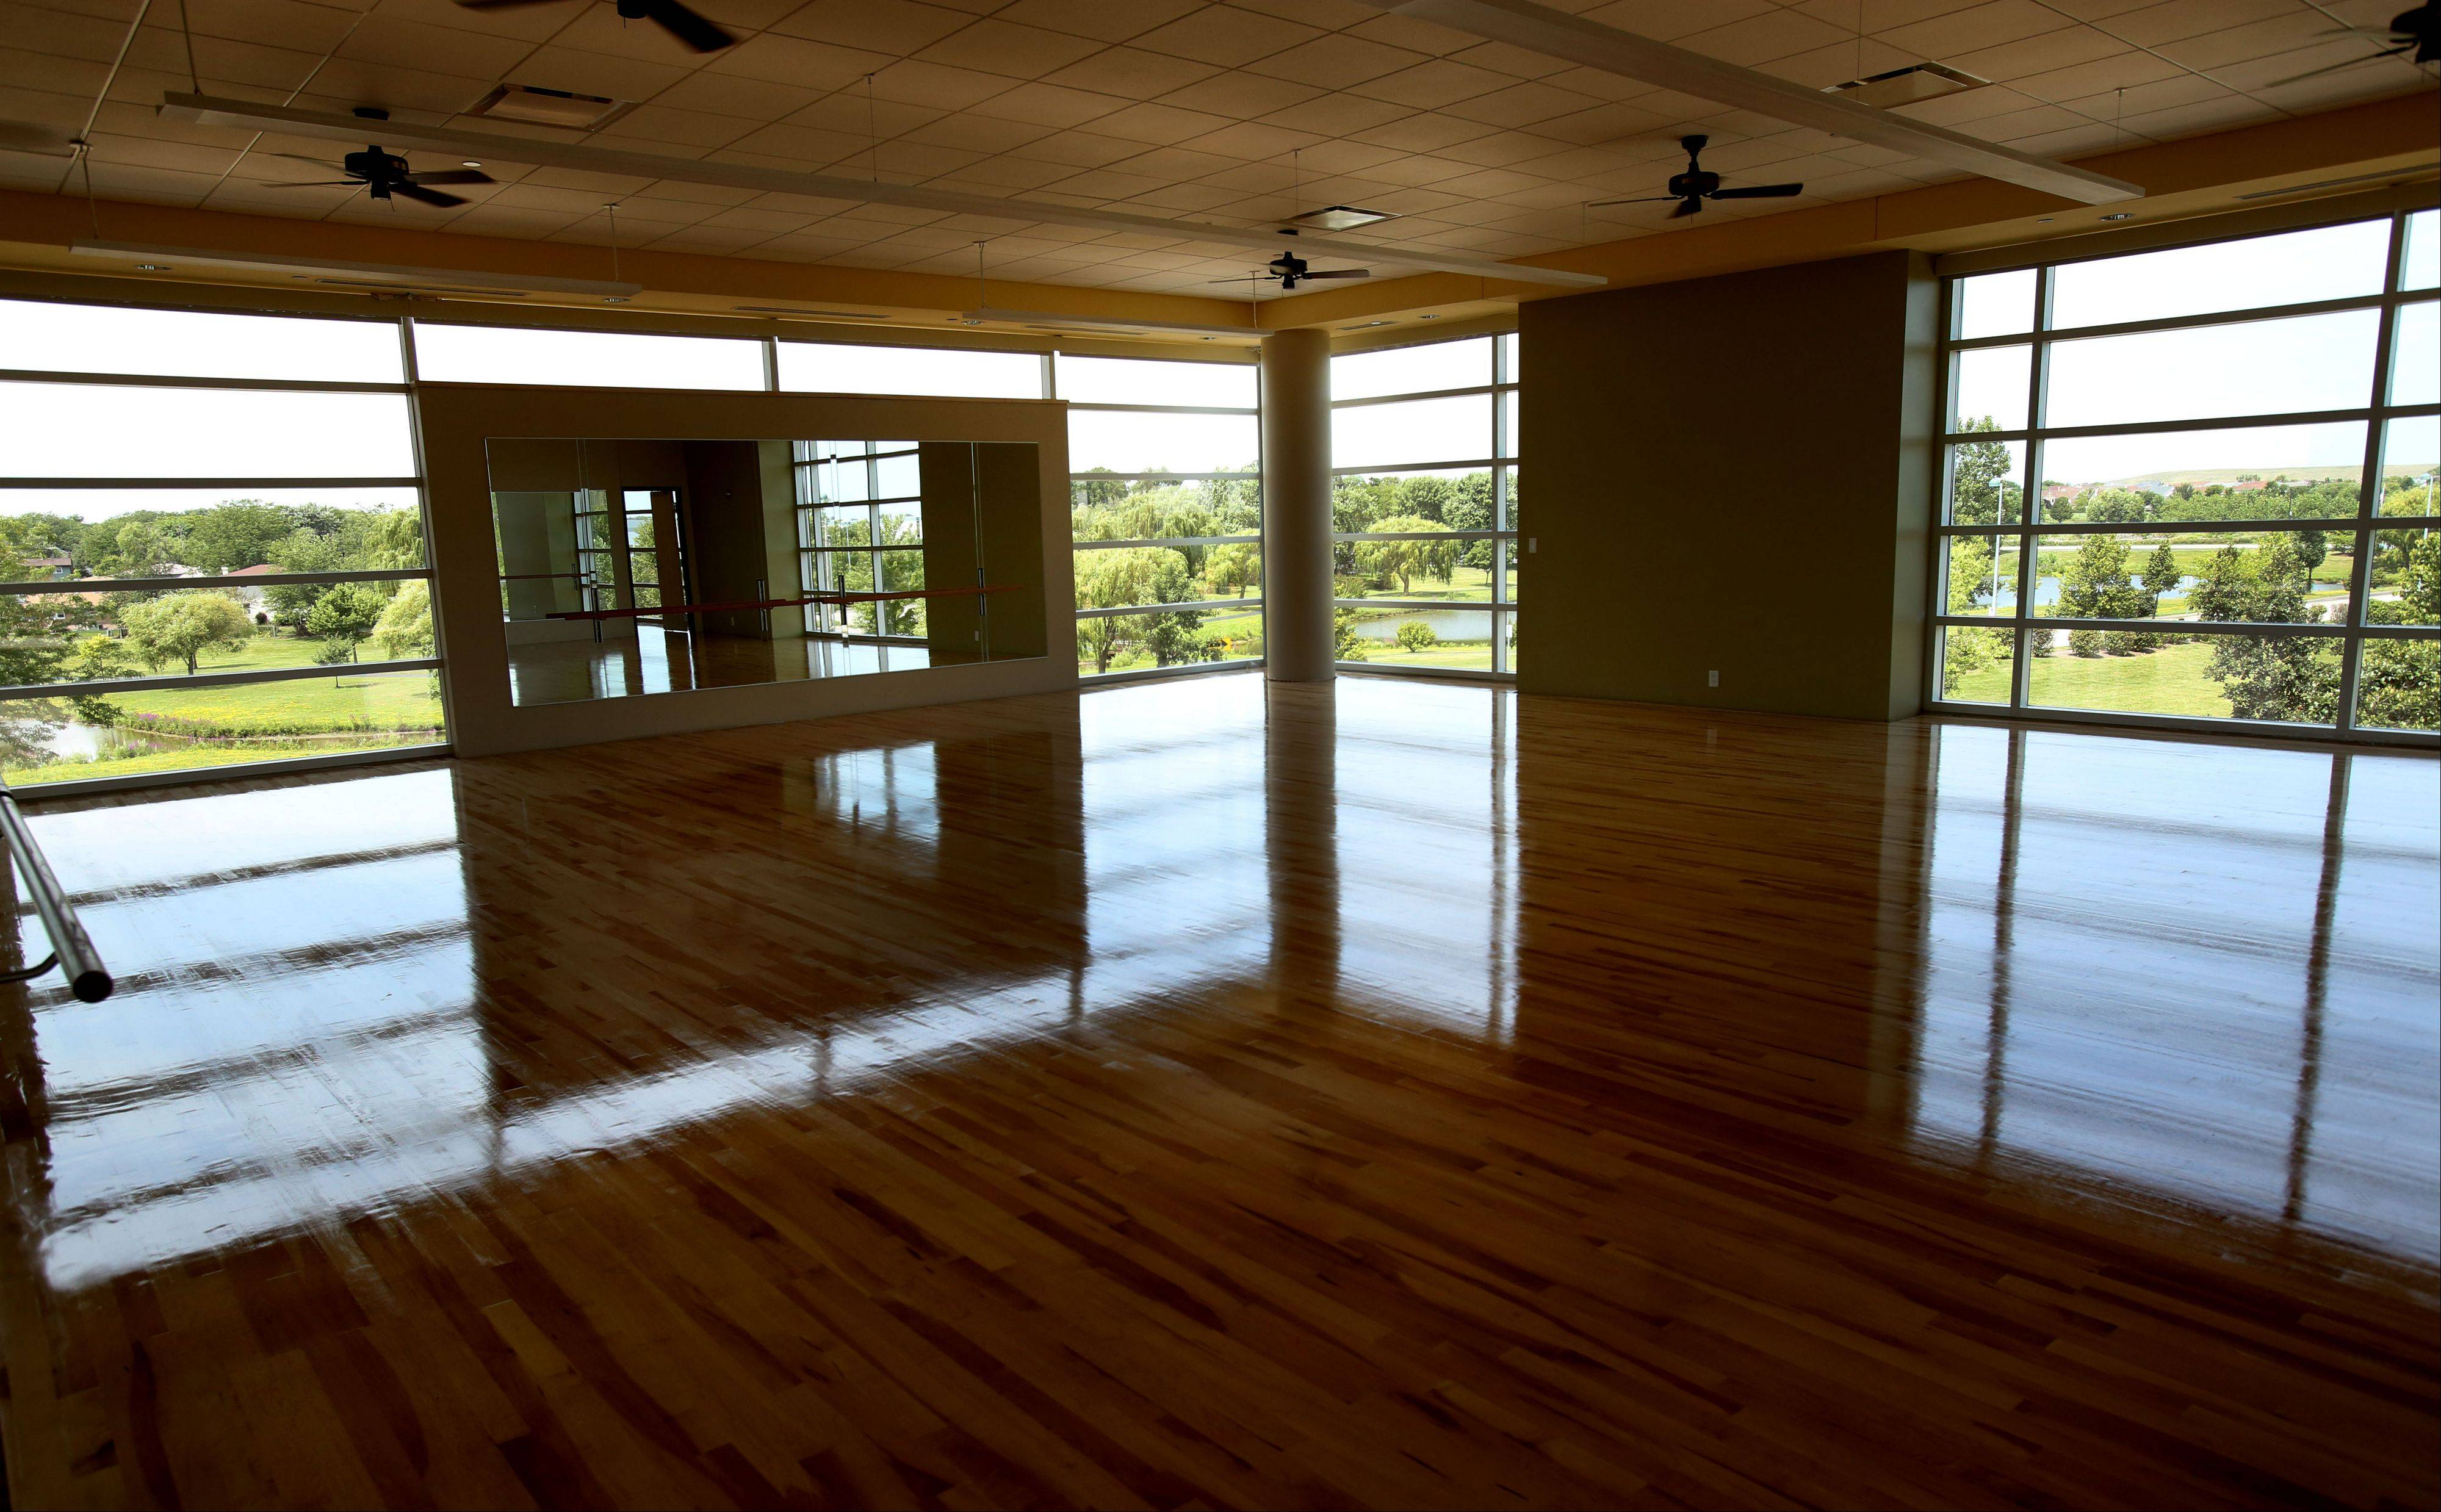 One of the exercise rooms of the new Fountain View Recreation Center in Carol Stream features expansive views of the nearby Town Center park.